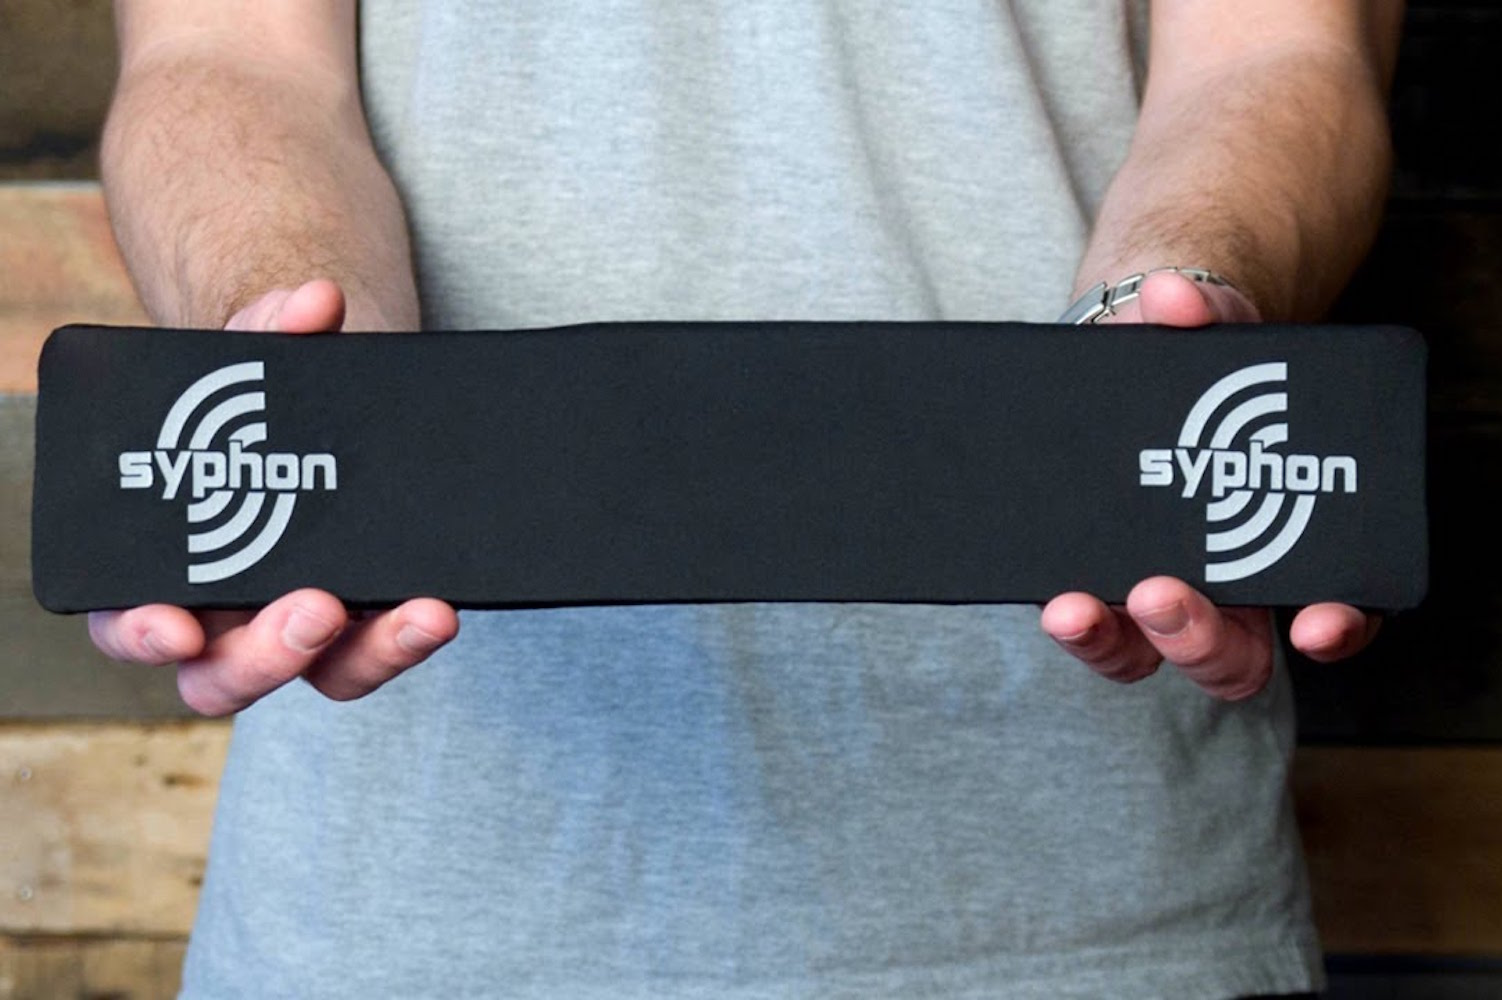 Syphon – The Flexible Sound Wrap Speakers